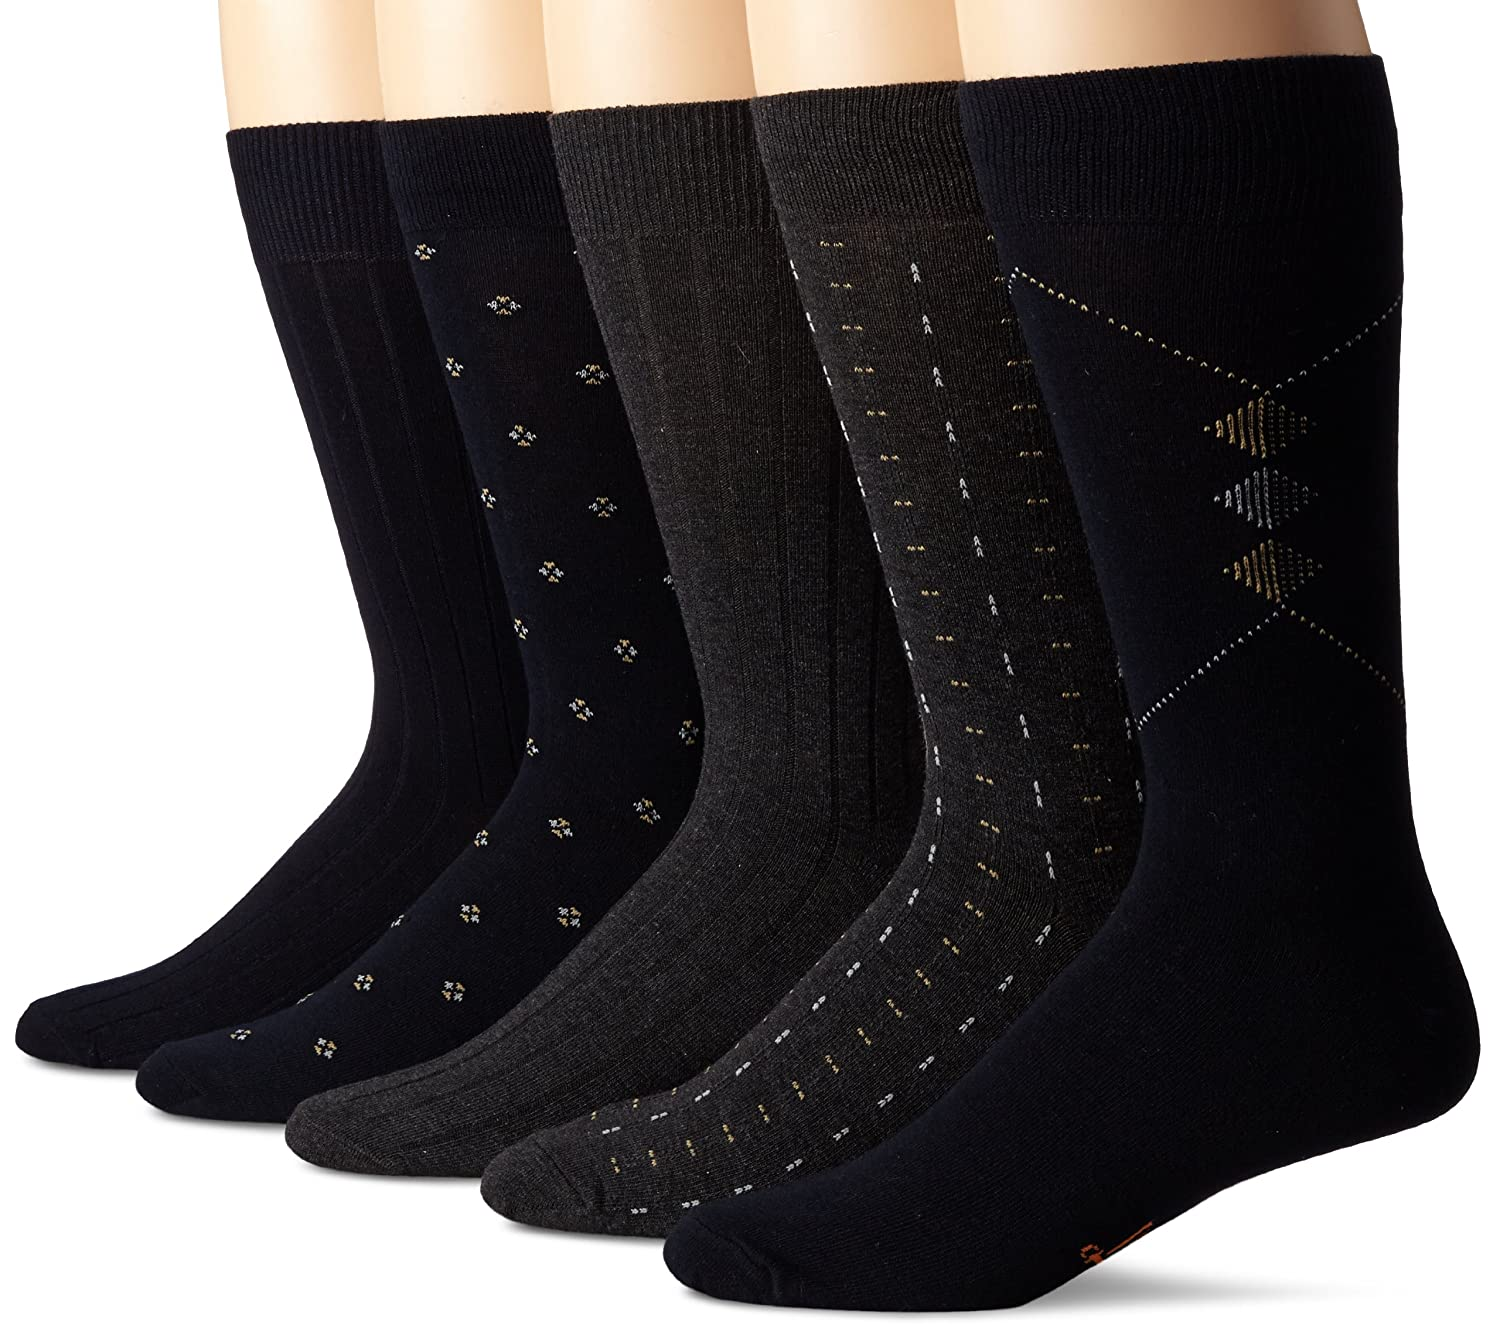 Dockers Mens 5-Pack Classics Dress Dobby Crew Socks